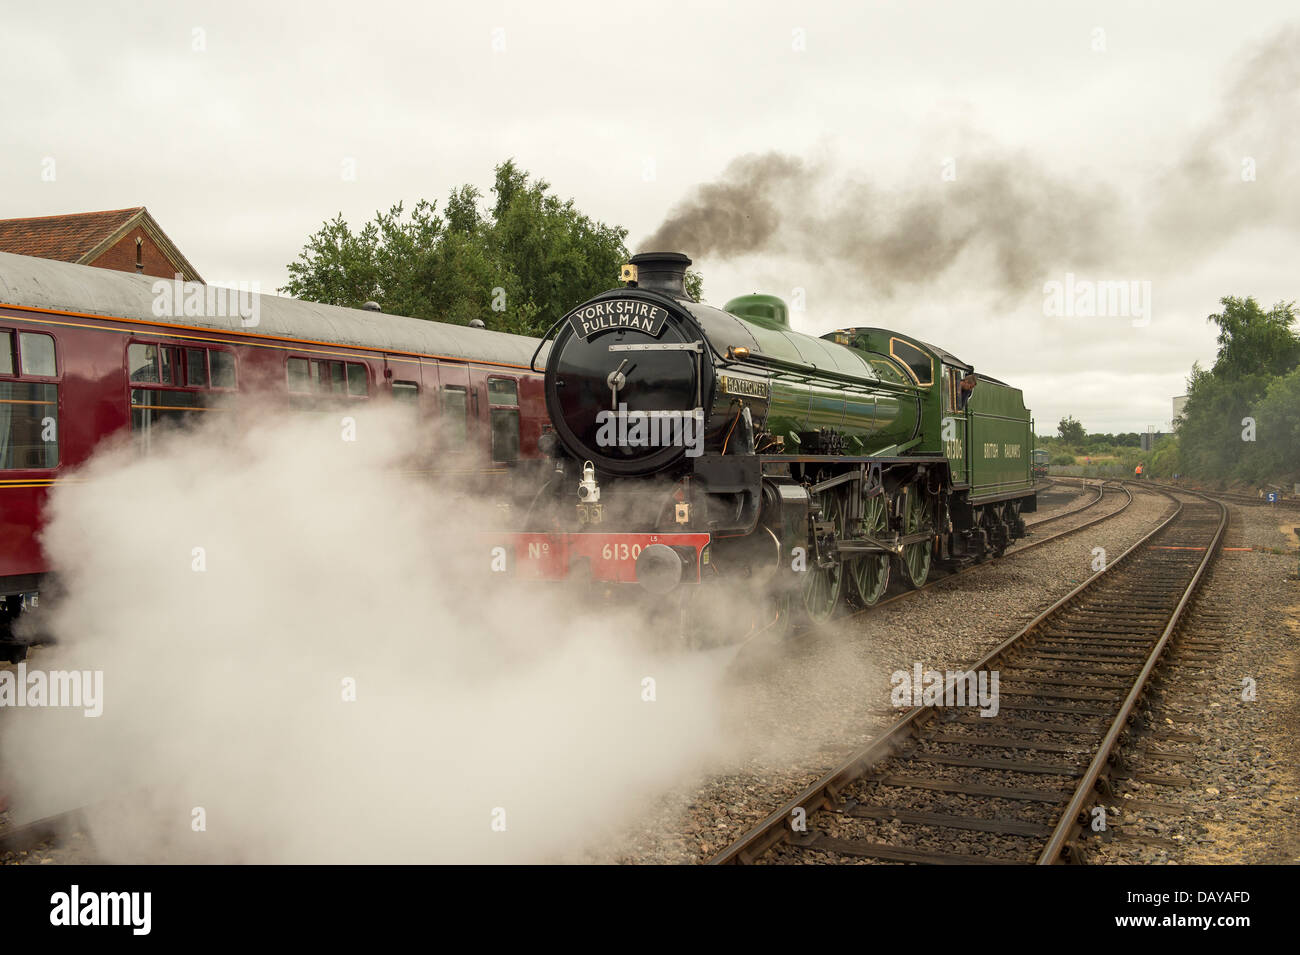 Mayflower 61306 stands at Dereham Station on the Mid Norfolk Railway. Stock Photo